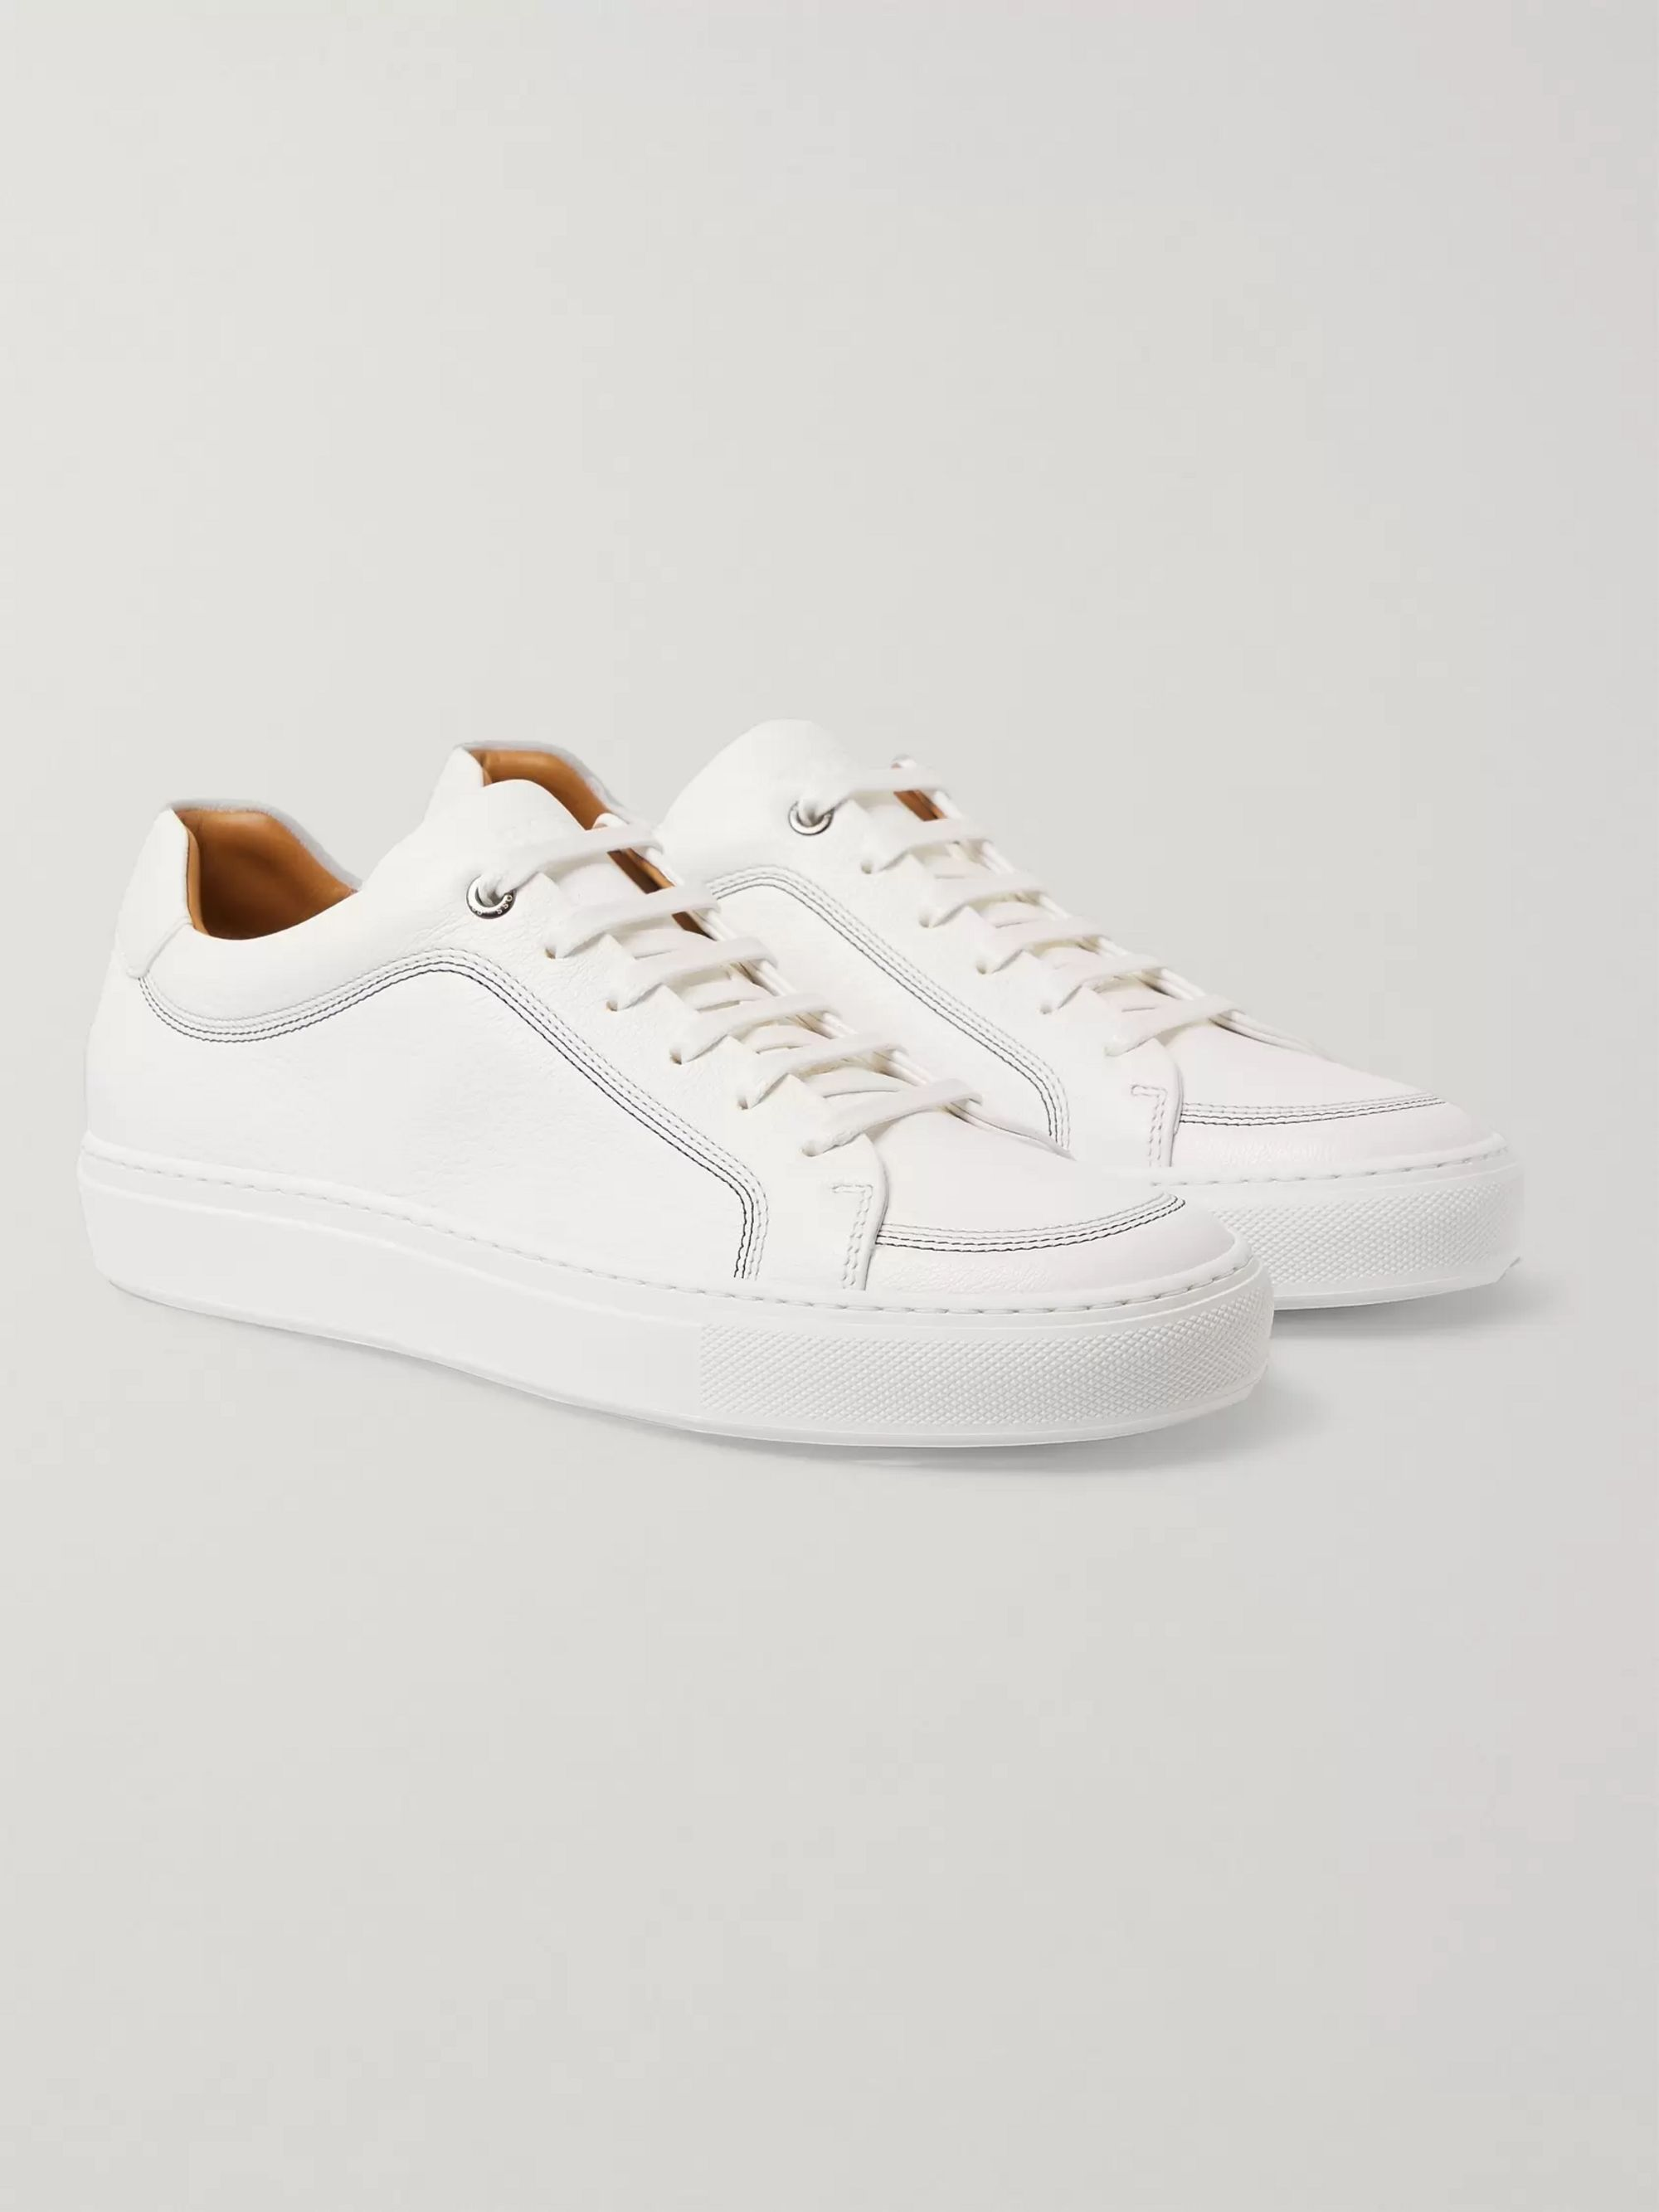 Hugo Boss Mirage Textured-Leather Sneakers